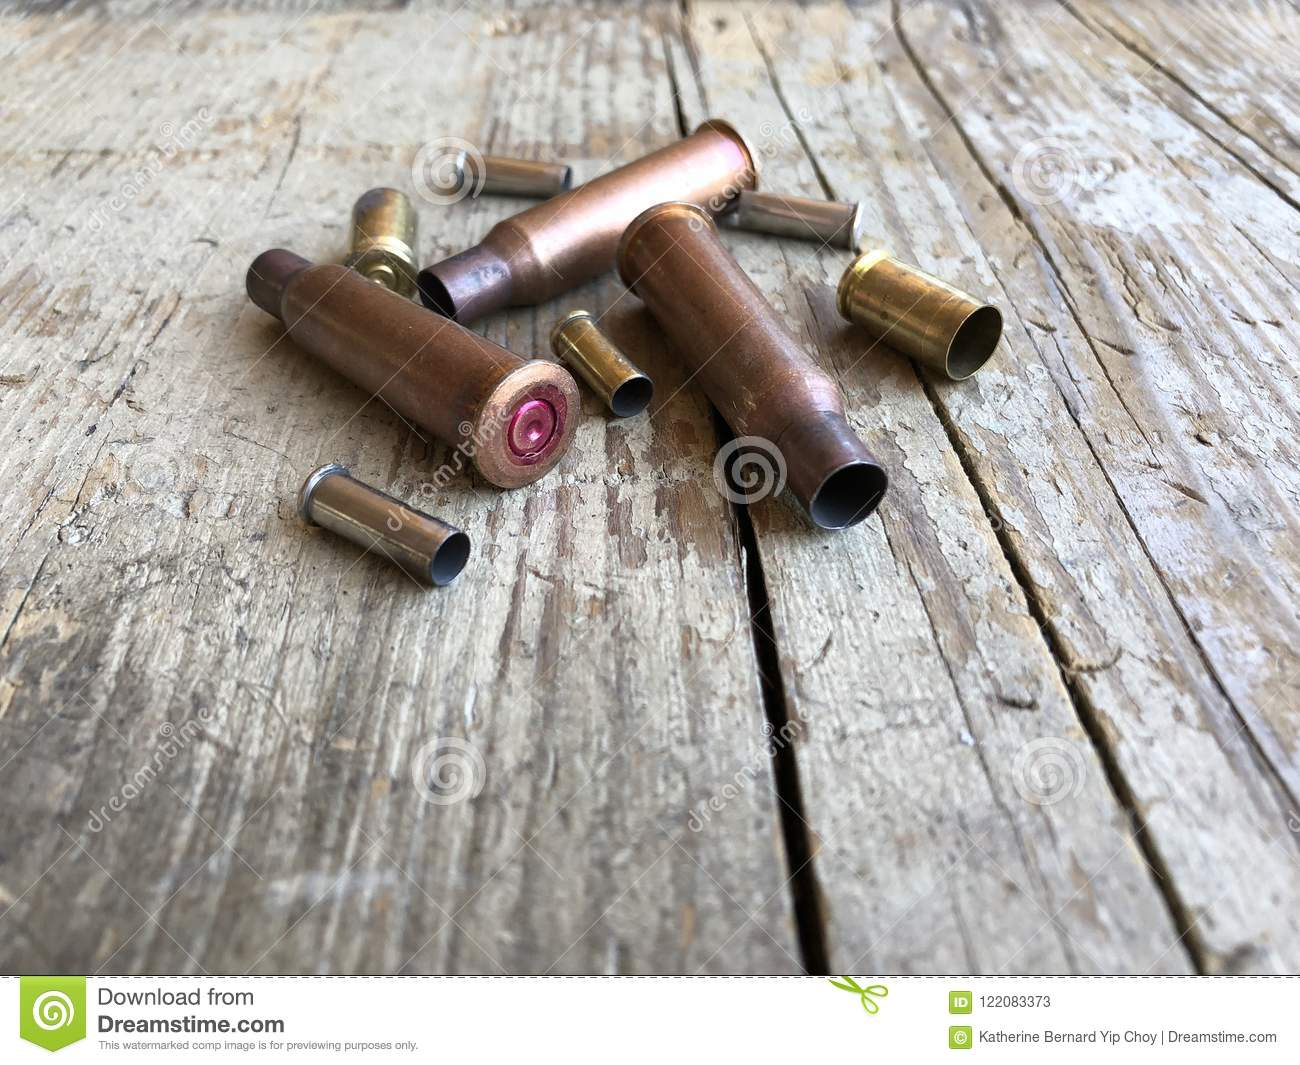 Close up view of ammunition casings on a wood background